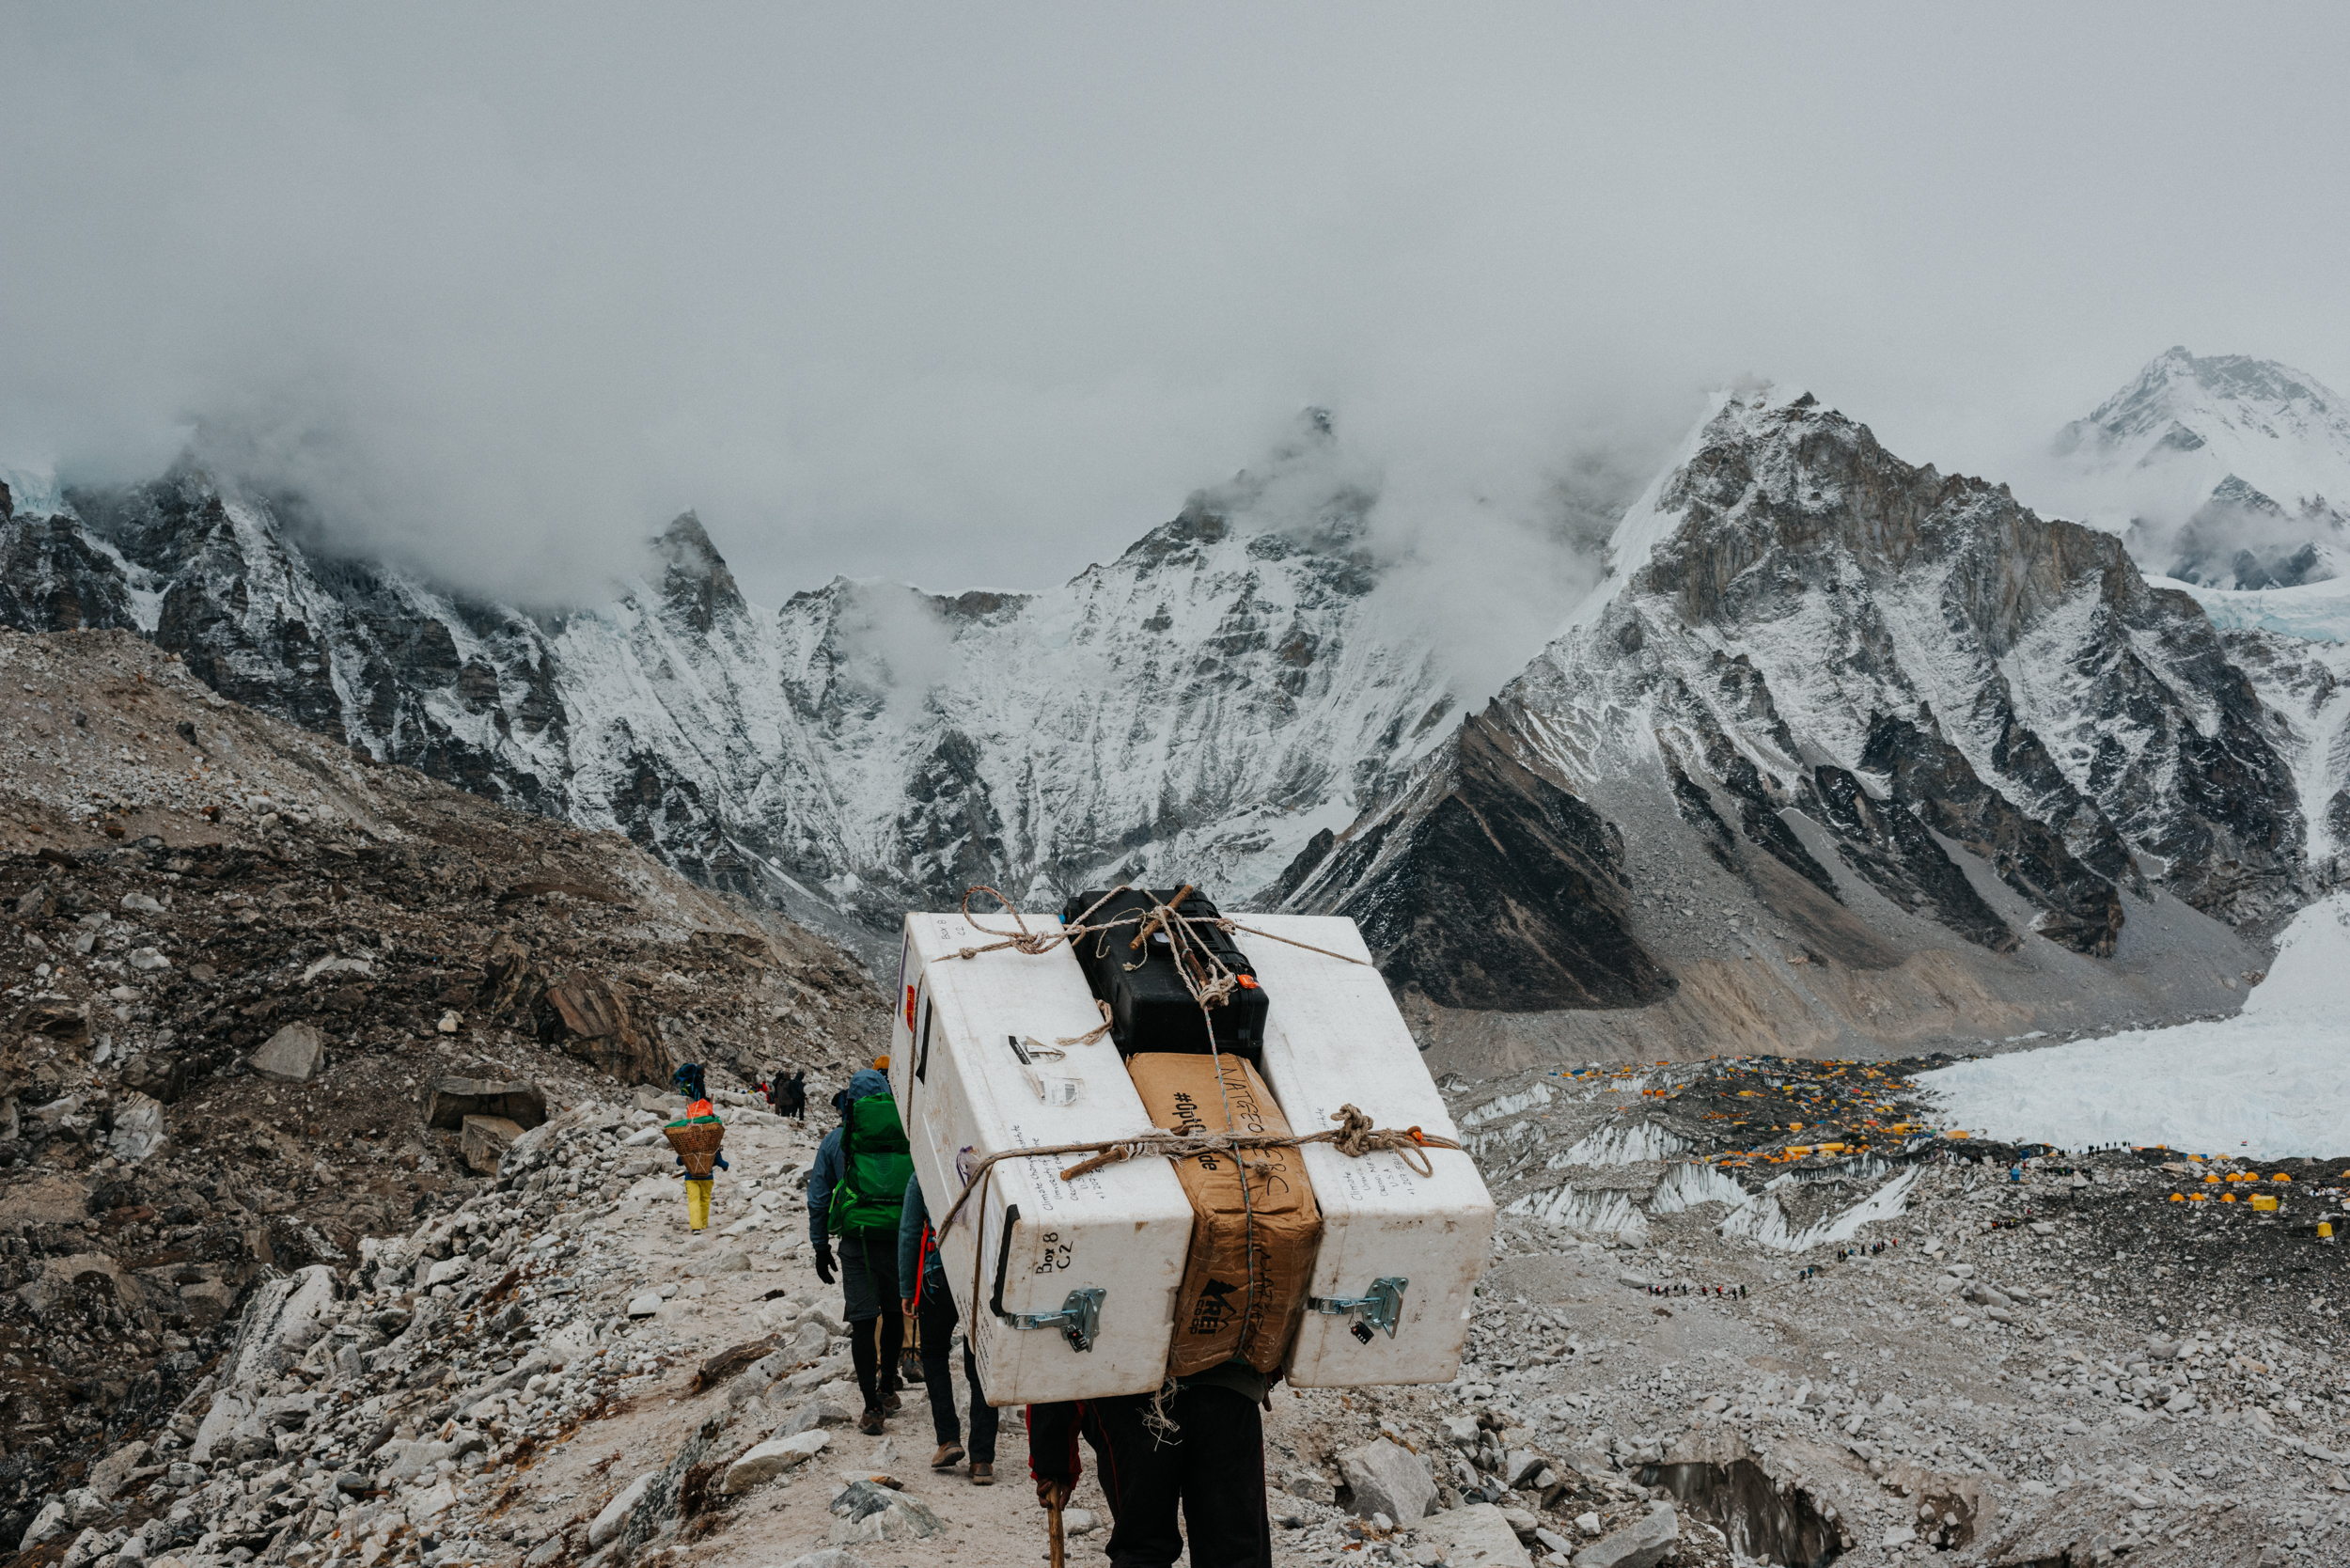 Nepal_EverestBaseCamp_2019_TaraShupe_Photography_DSC_4197.jpg